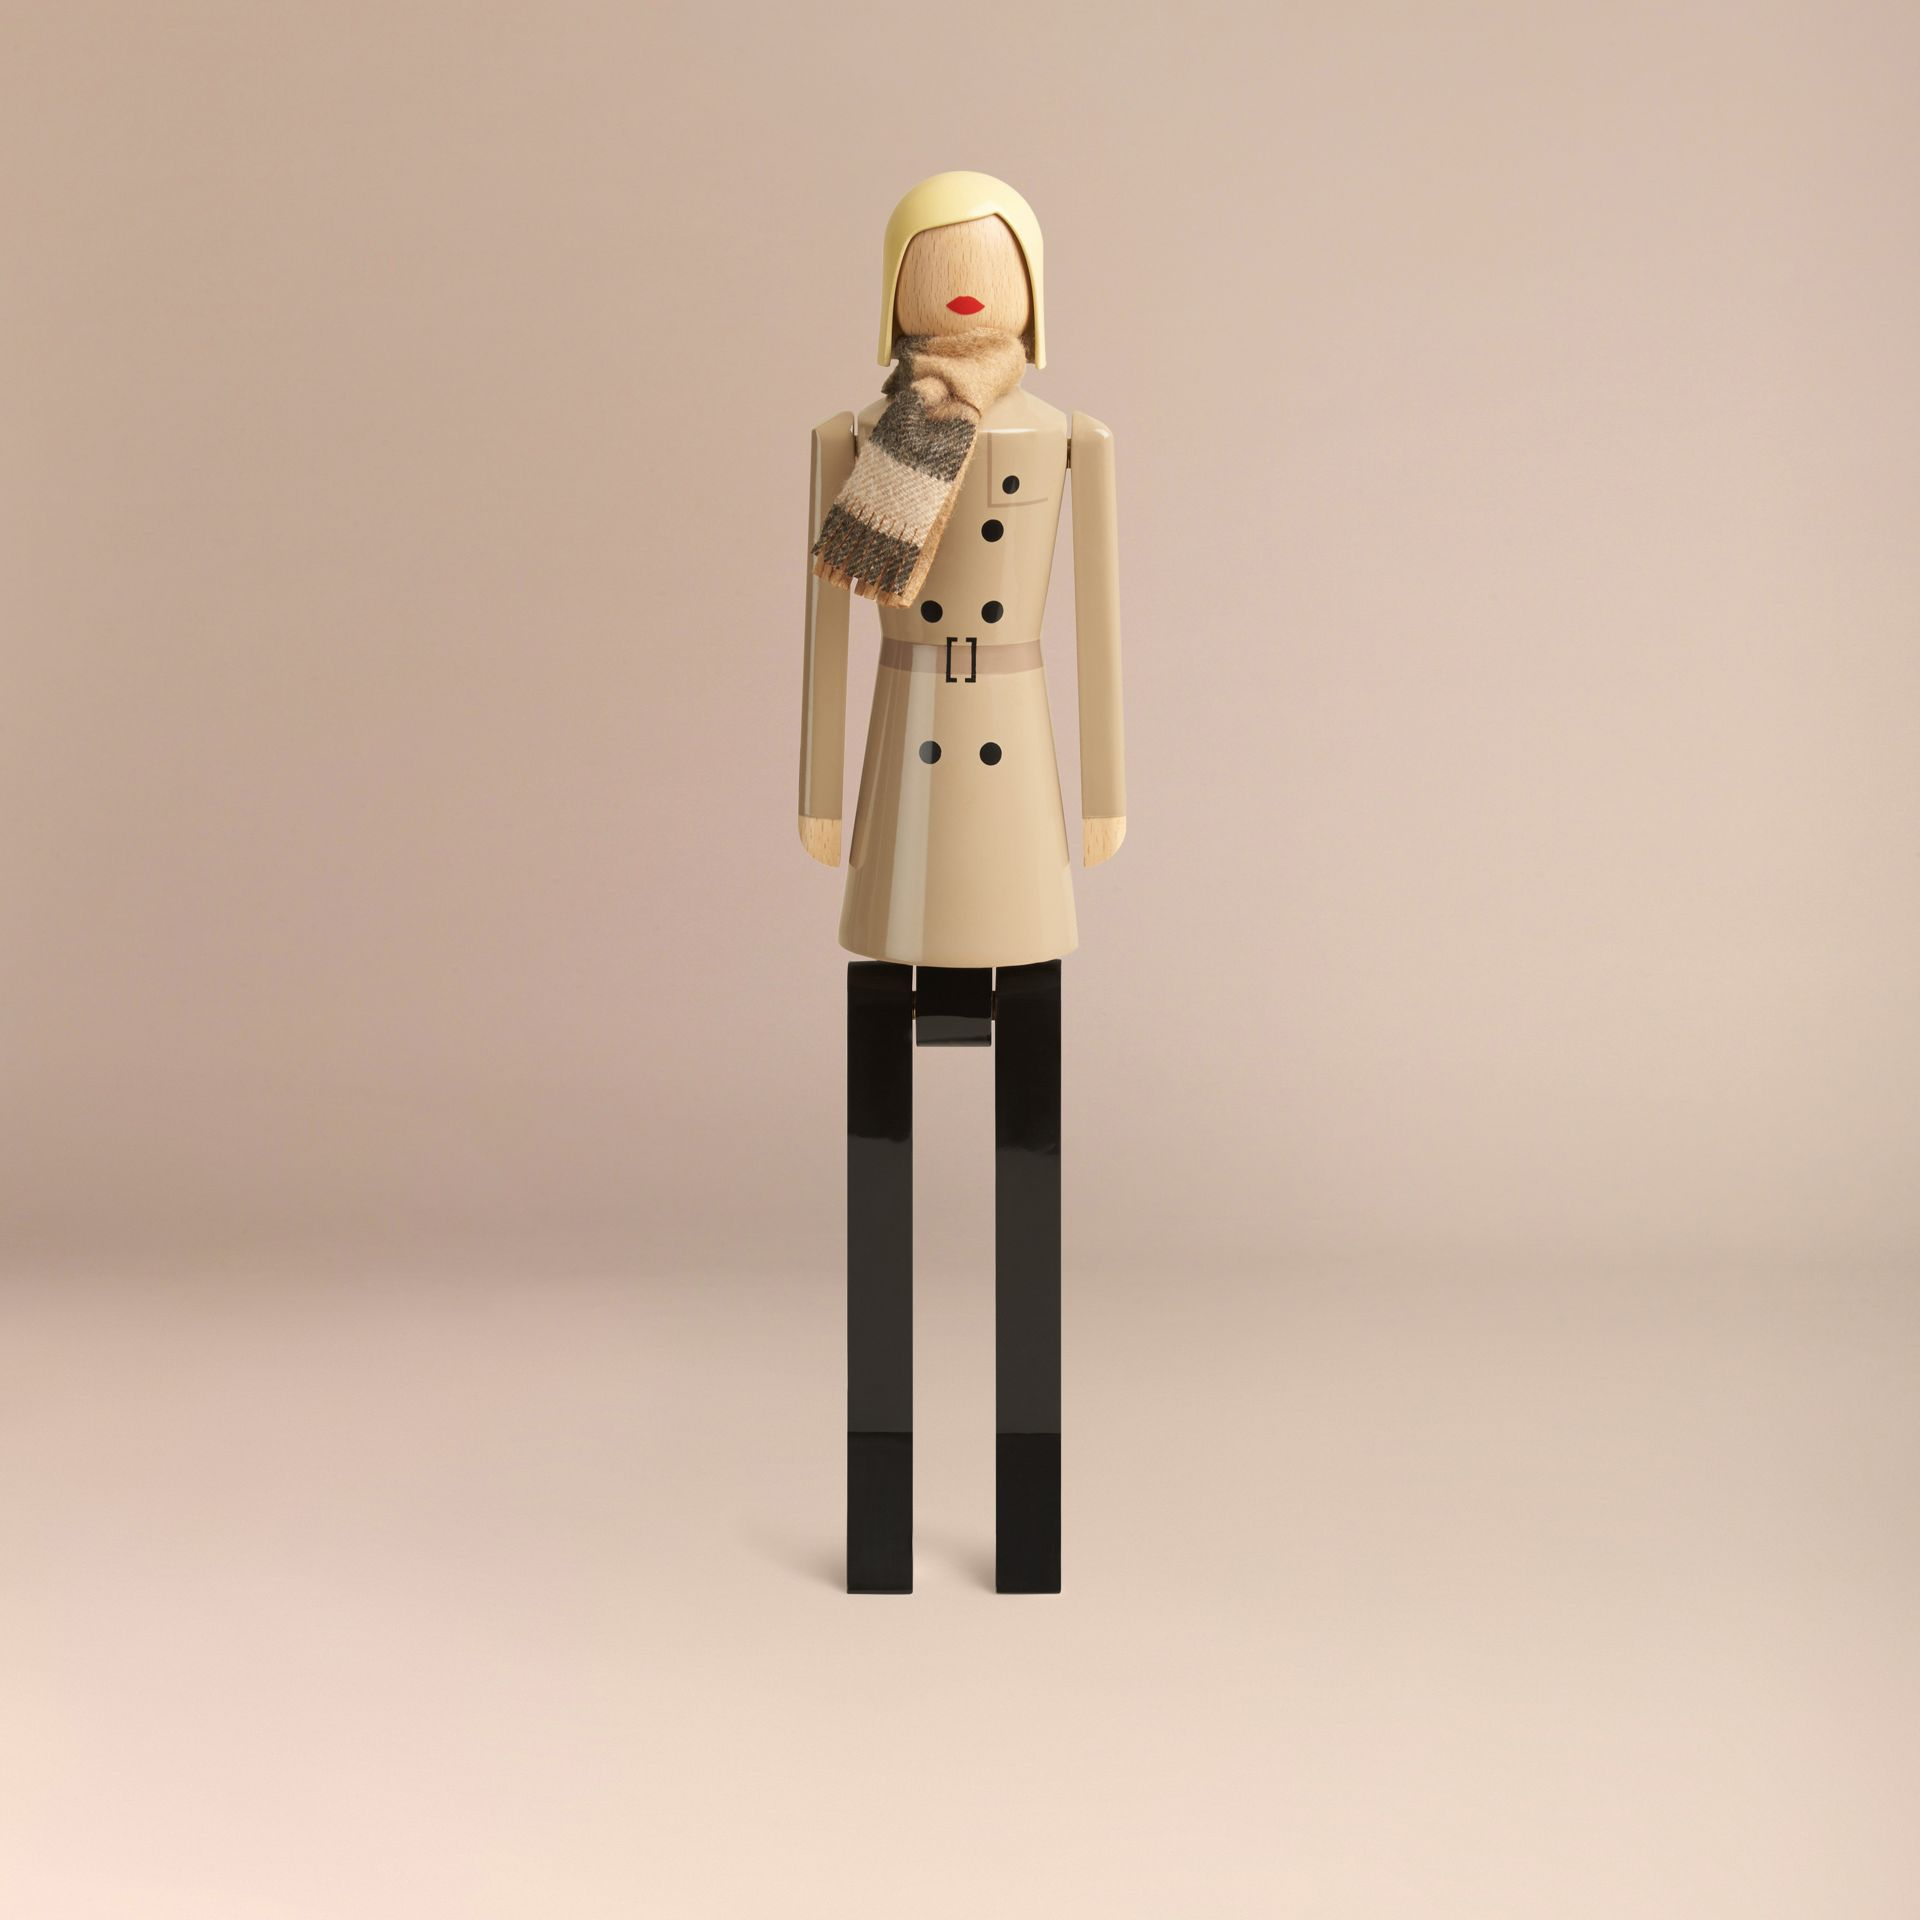 Multicolour Miss Trench Limited Edition Wooden Puppet - gallery image 4